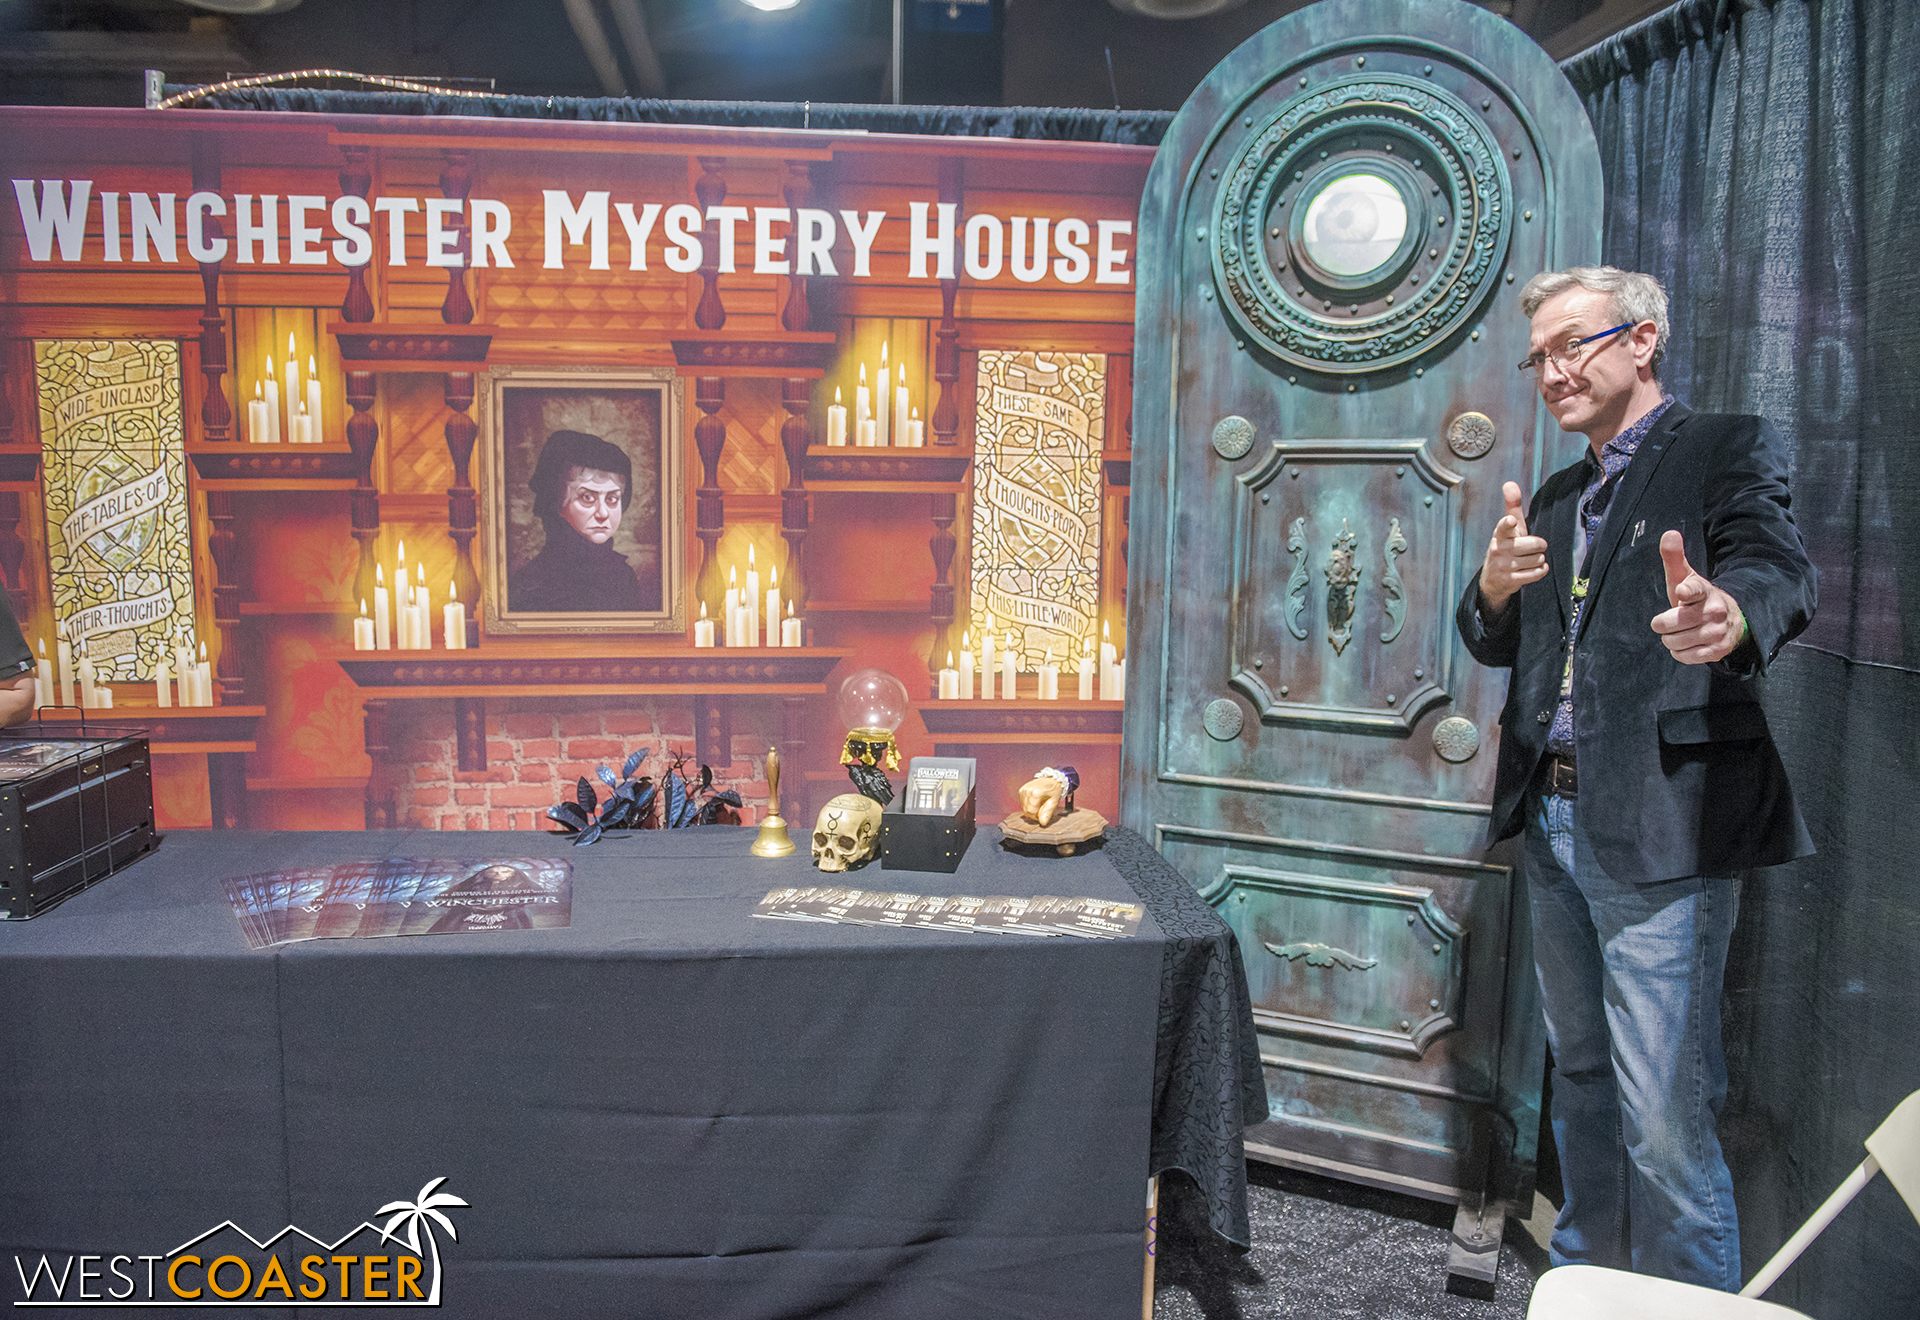 Winchester Mystery House creative director, Peter Overstreet, striking a pose in front of the Winchester booth.